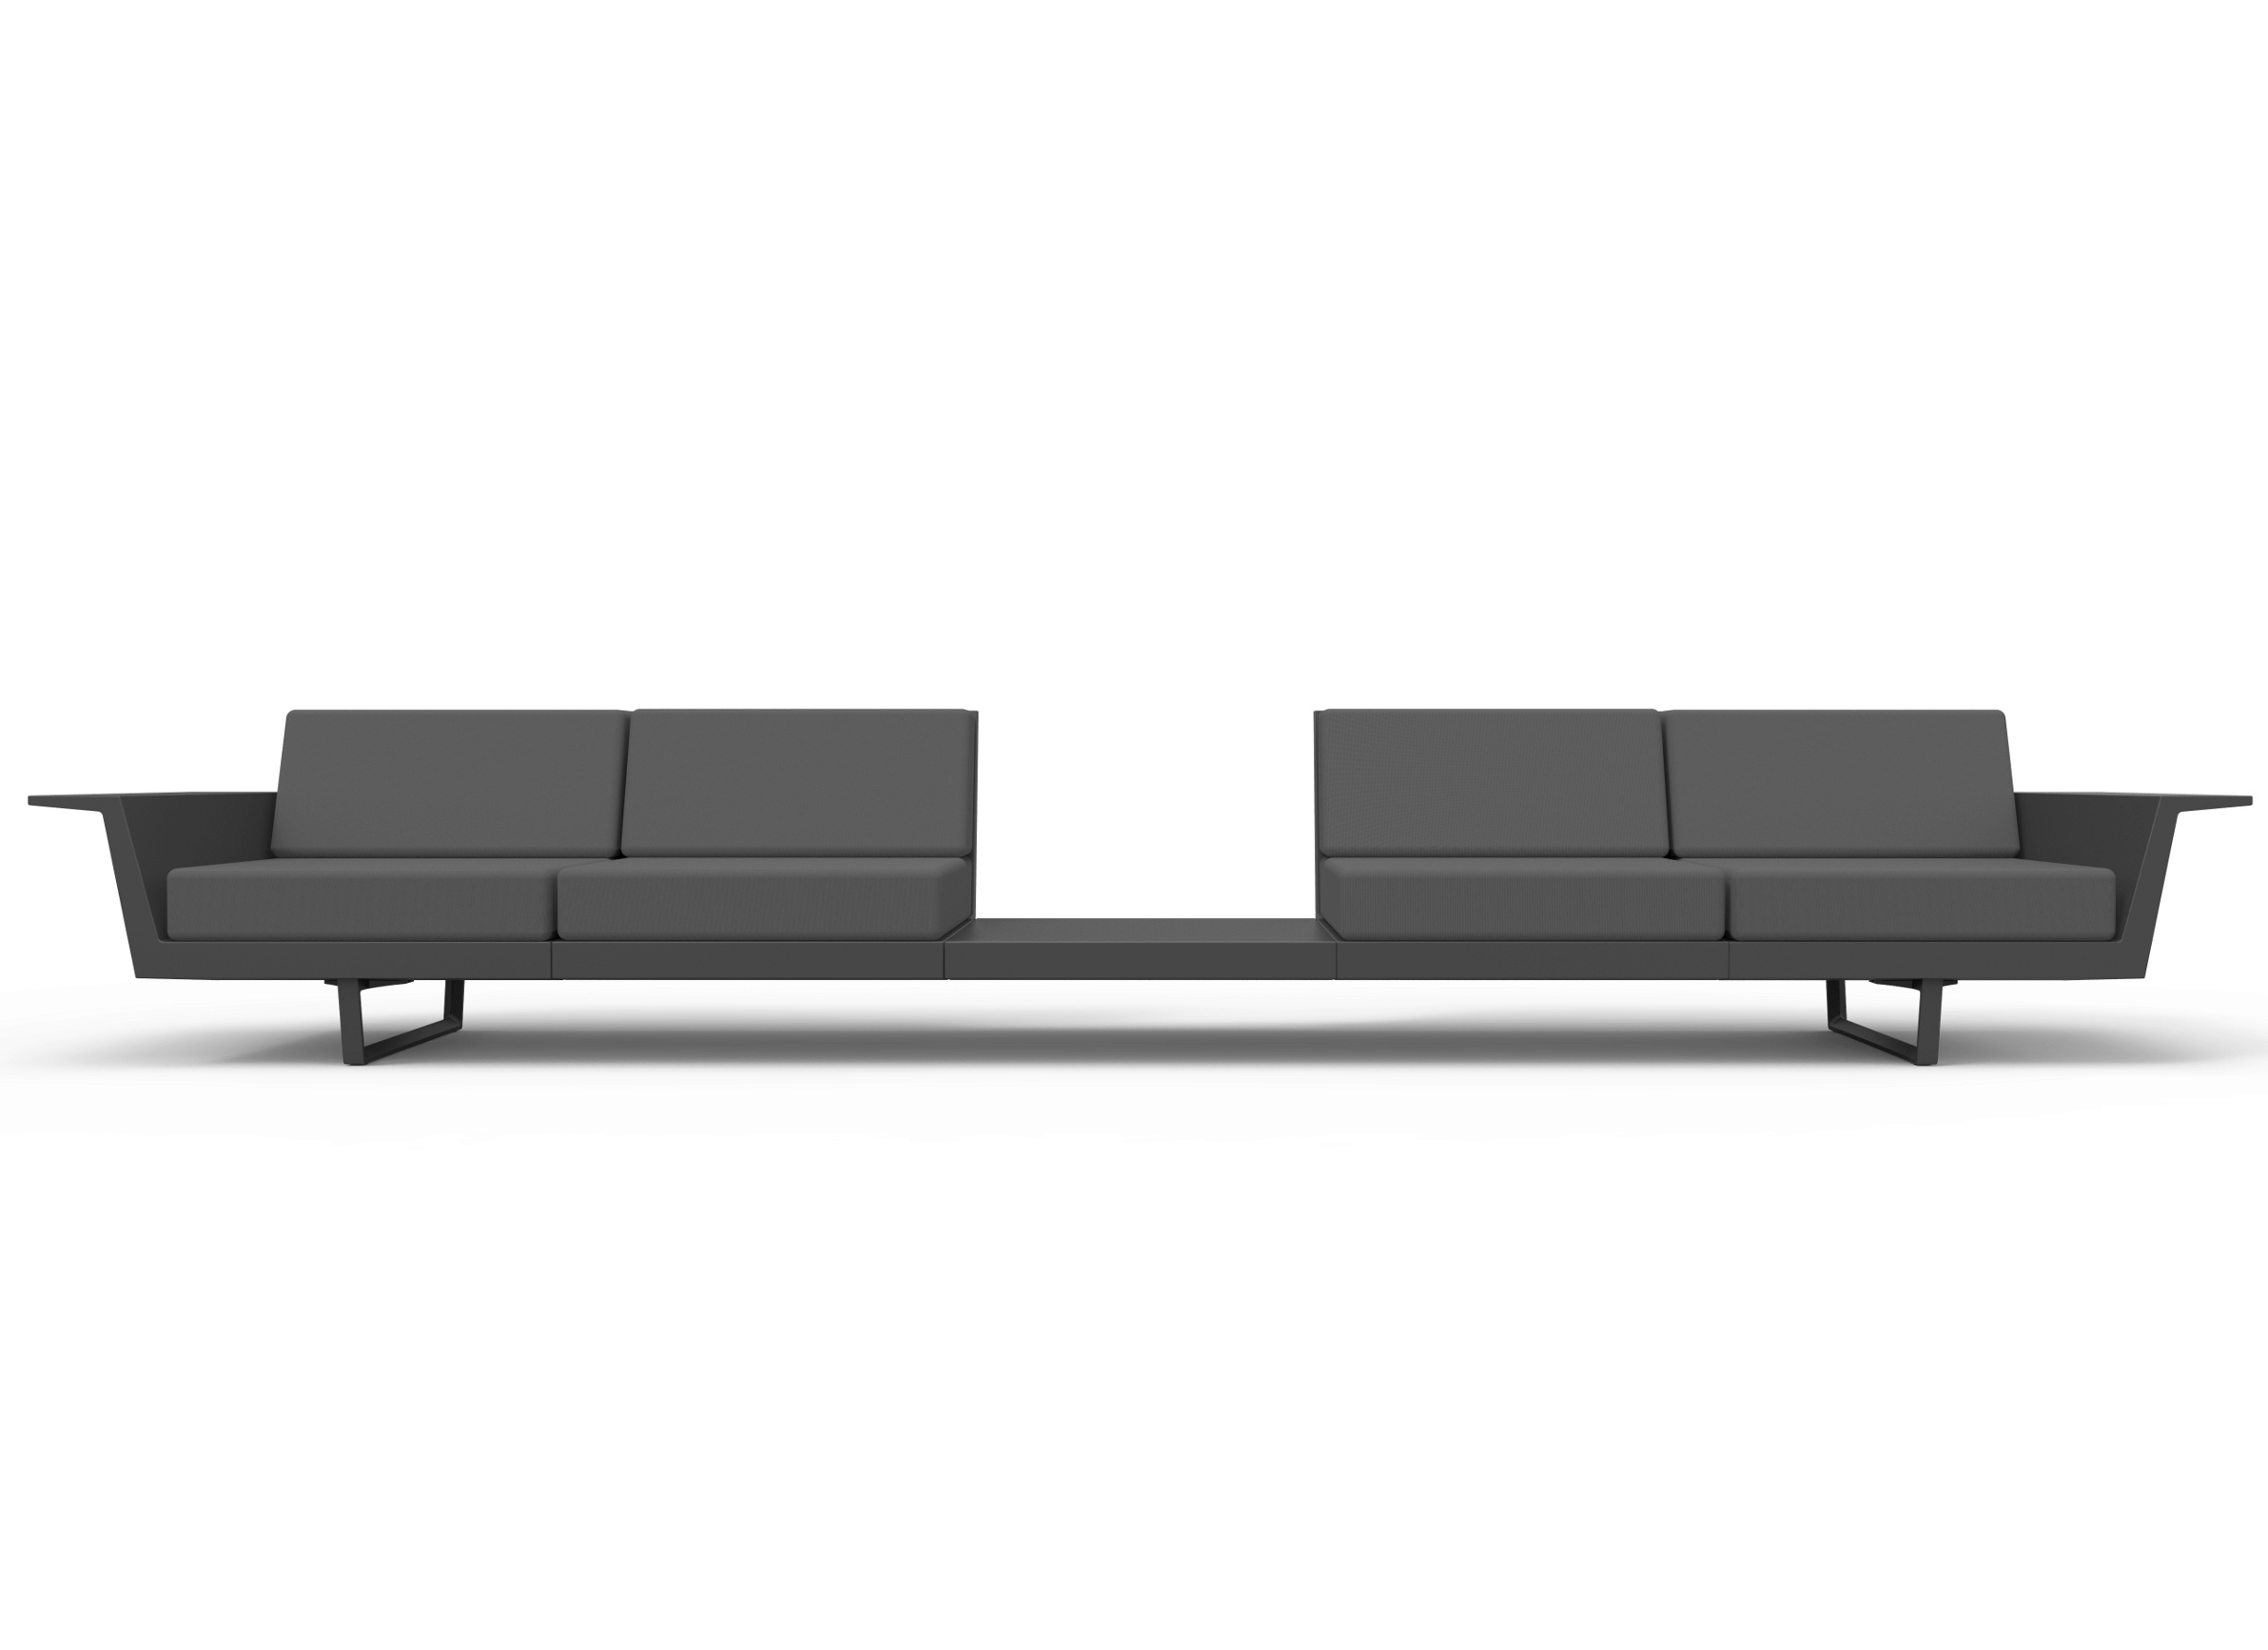 REST | Modular garden sofa By VONDOM design A-cero